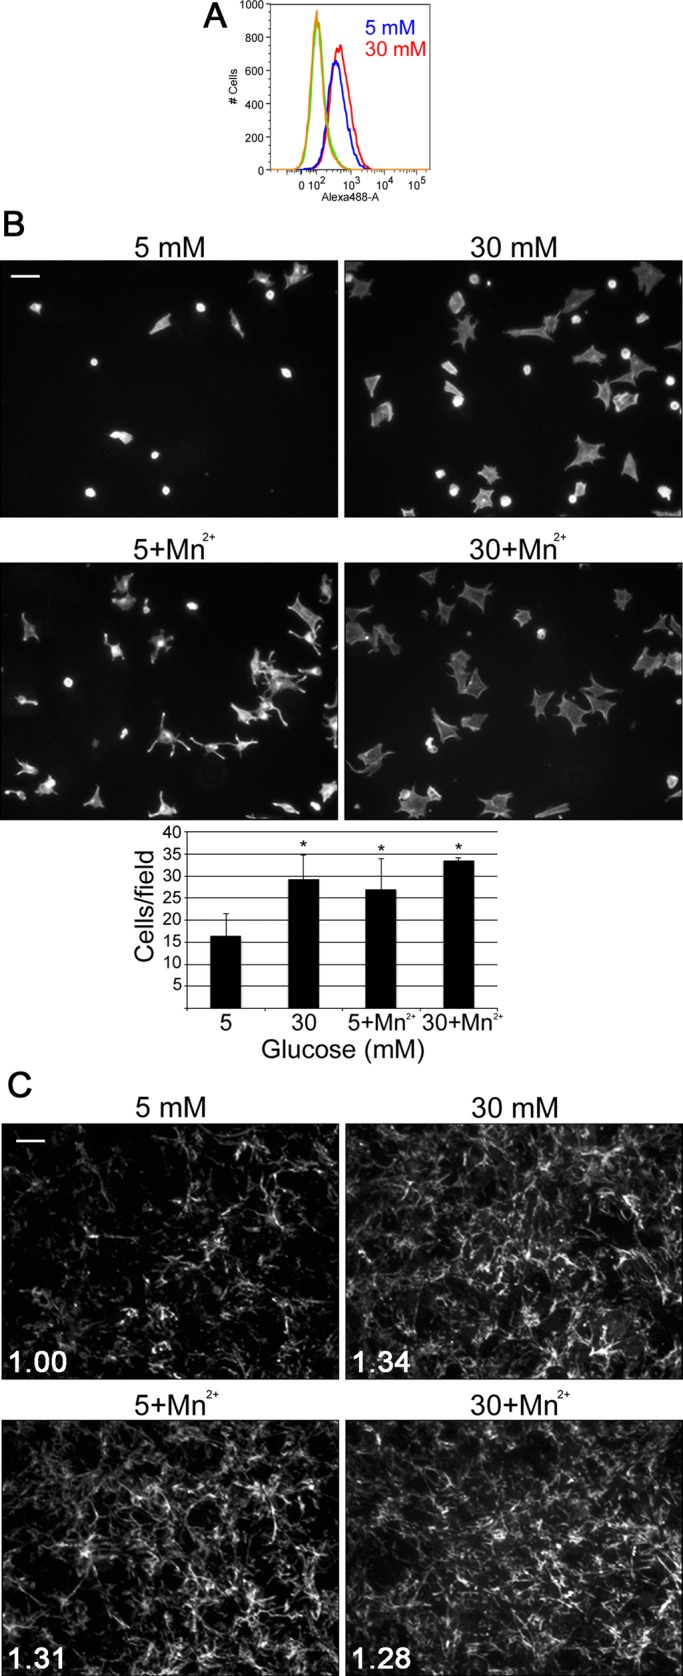 Mn 2+ stimulates assembly of FN matrix in normal glucose. Mesangial cells were grown in normal or high glucose media and then labeled with an anti–α5β1 integrin antibody for analysis by flow cytometry (A), replated on FN-coated coverslips (B), or fixed and stained with IC3 anti-rat FN monoclonal antibody (C). (A) The graph is representative of two independent experiments. (B) Cells were incubated for 1 h at 37°C with or without 1.0 mM MnCl 2 before unattached cells were washed away. Attached cells were fixed and stained with rhodamine–phalloidin, and 15 fields/condition were counted. Images are representative; scale bar, 100 μm. Bar graph shows the mean of two to four independent experiments ± 1 SD; * p